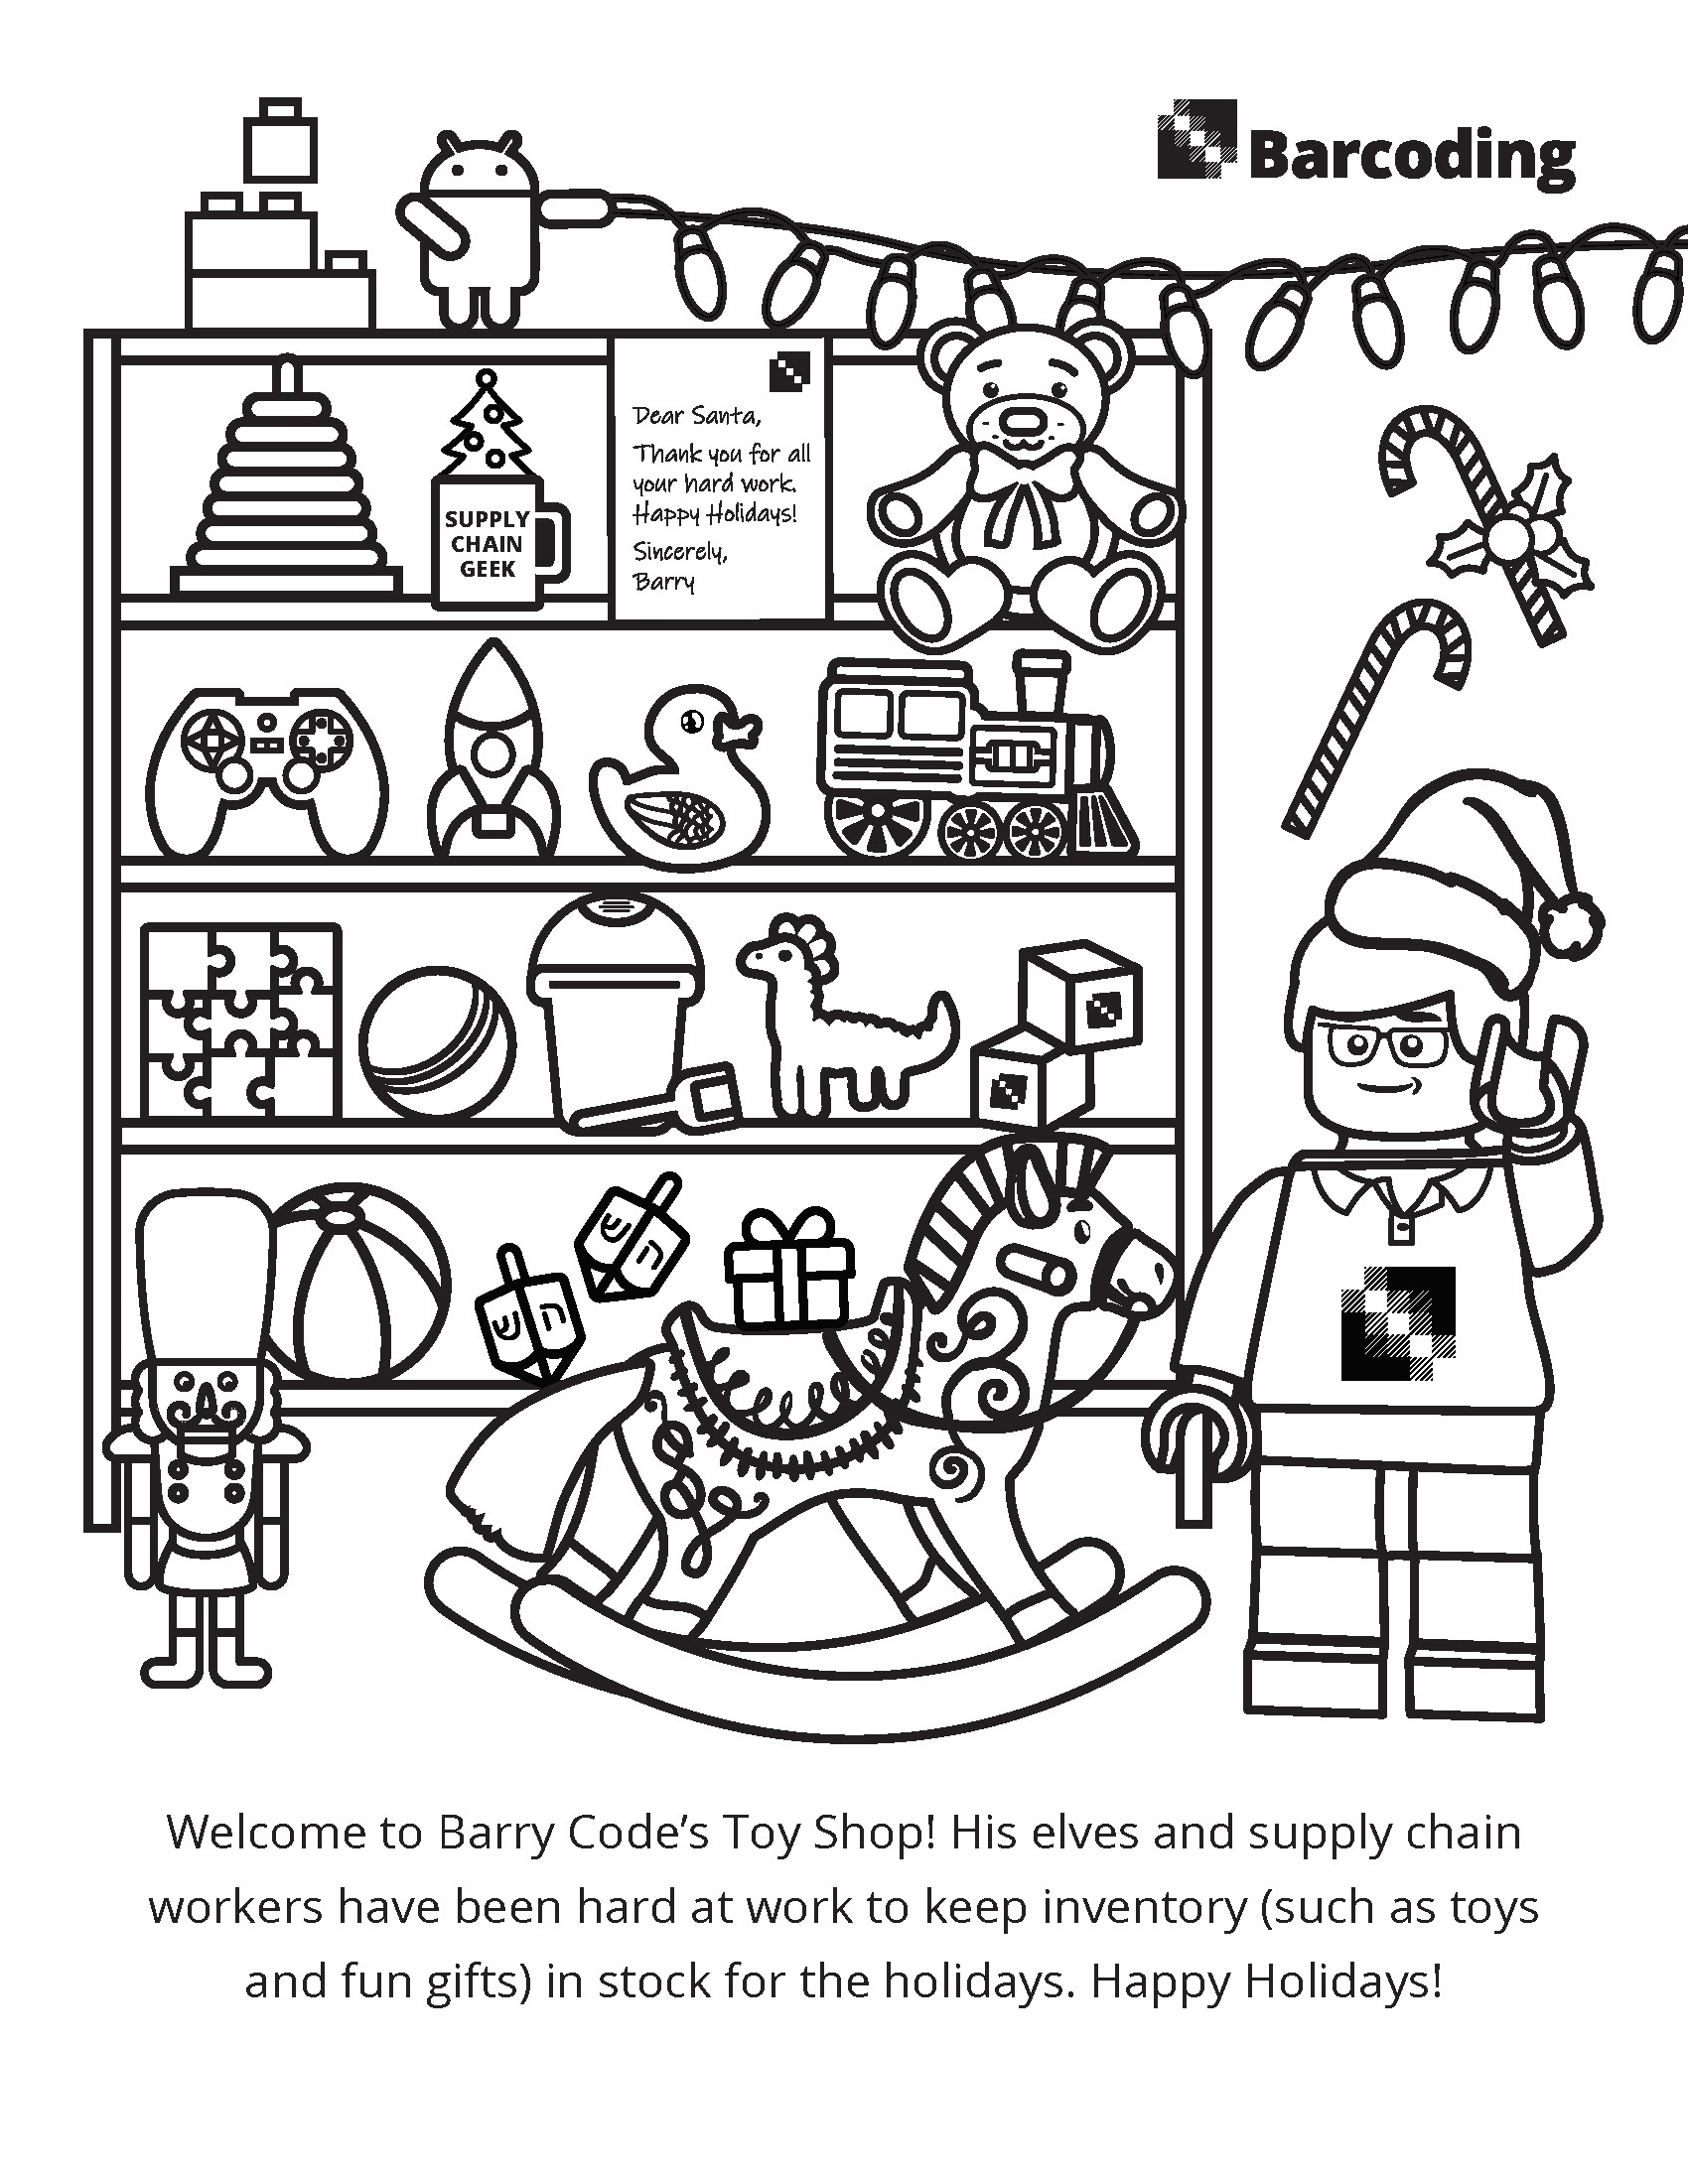 Barry Code's Toy Shop